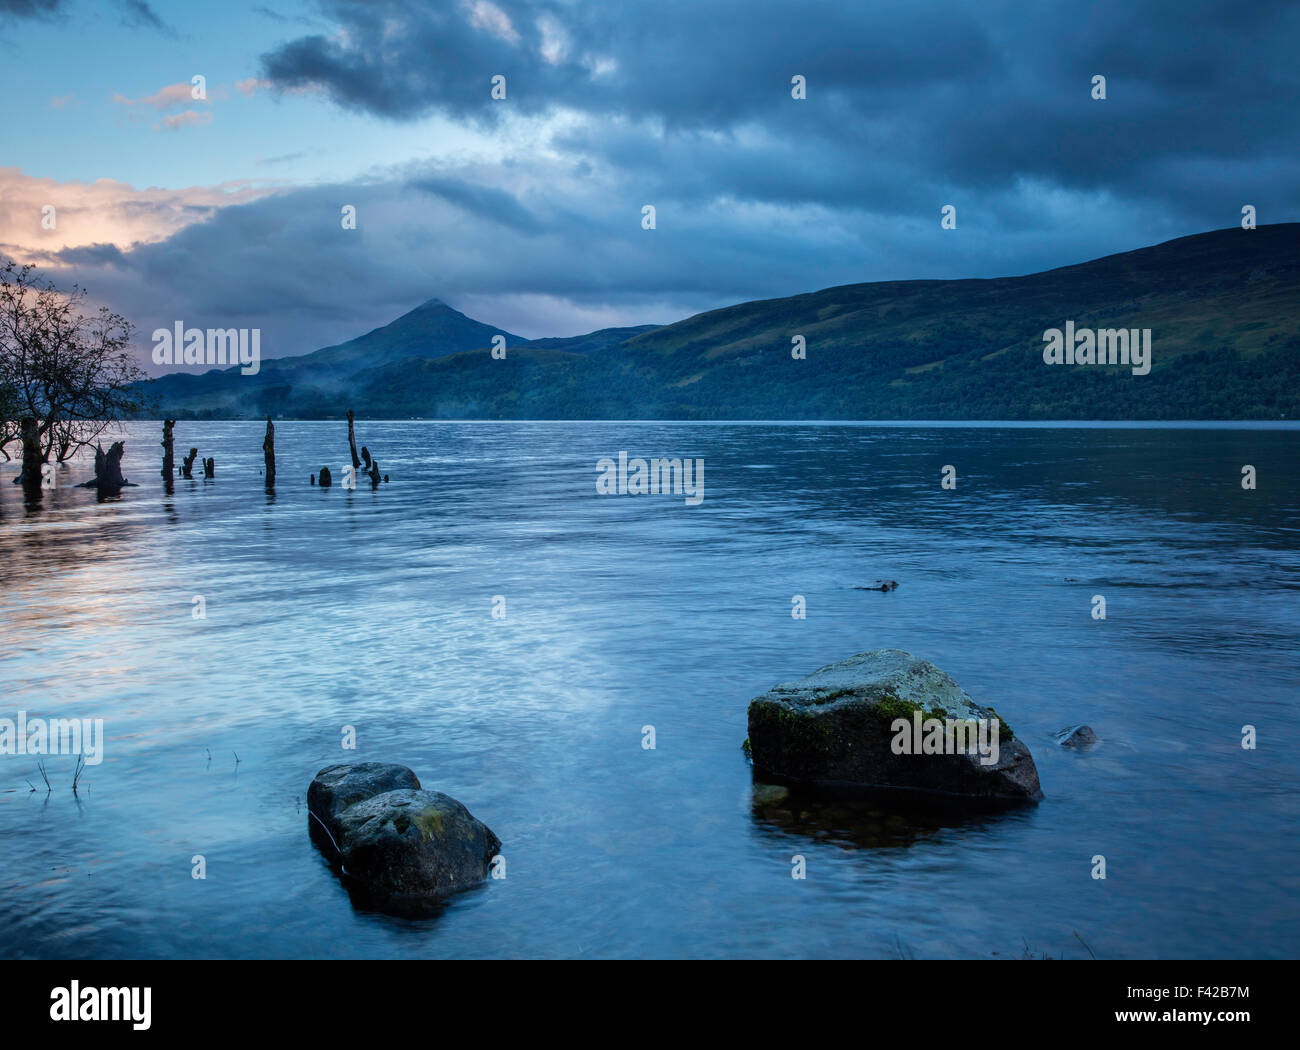 Loch Rannoch at dusk, Perth & Kinross, Scotland, UK - Stock Image